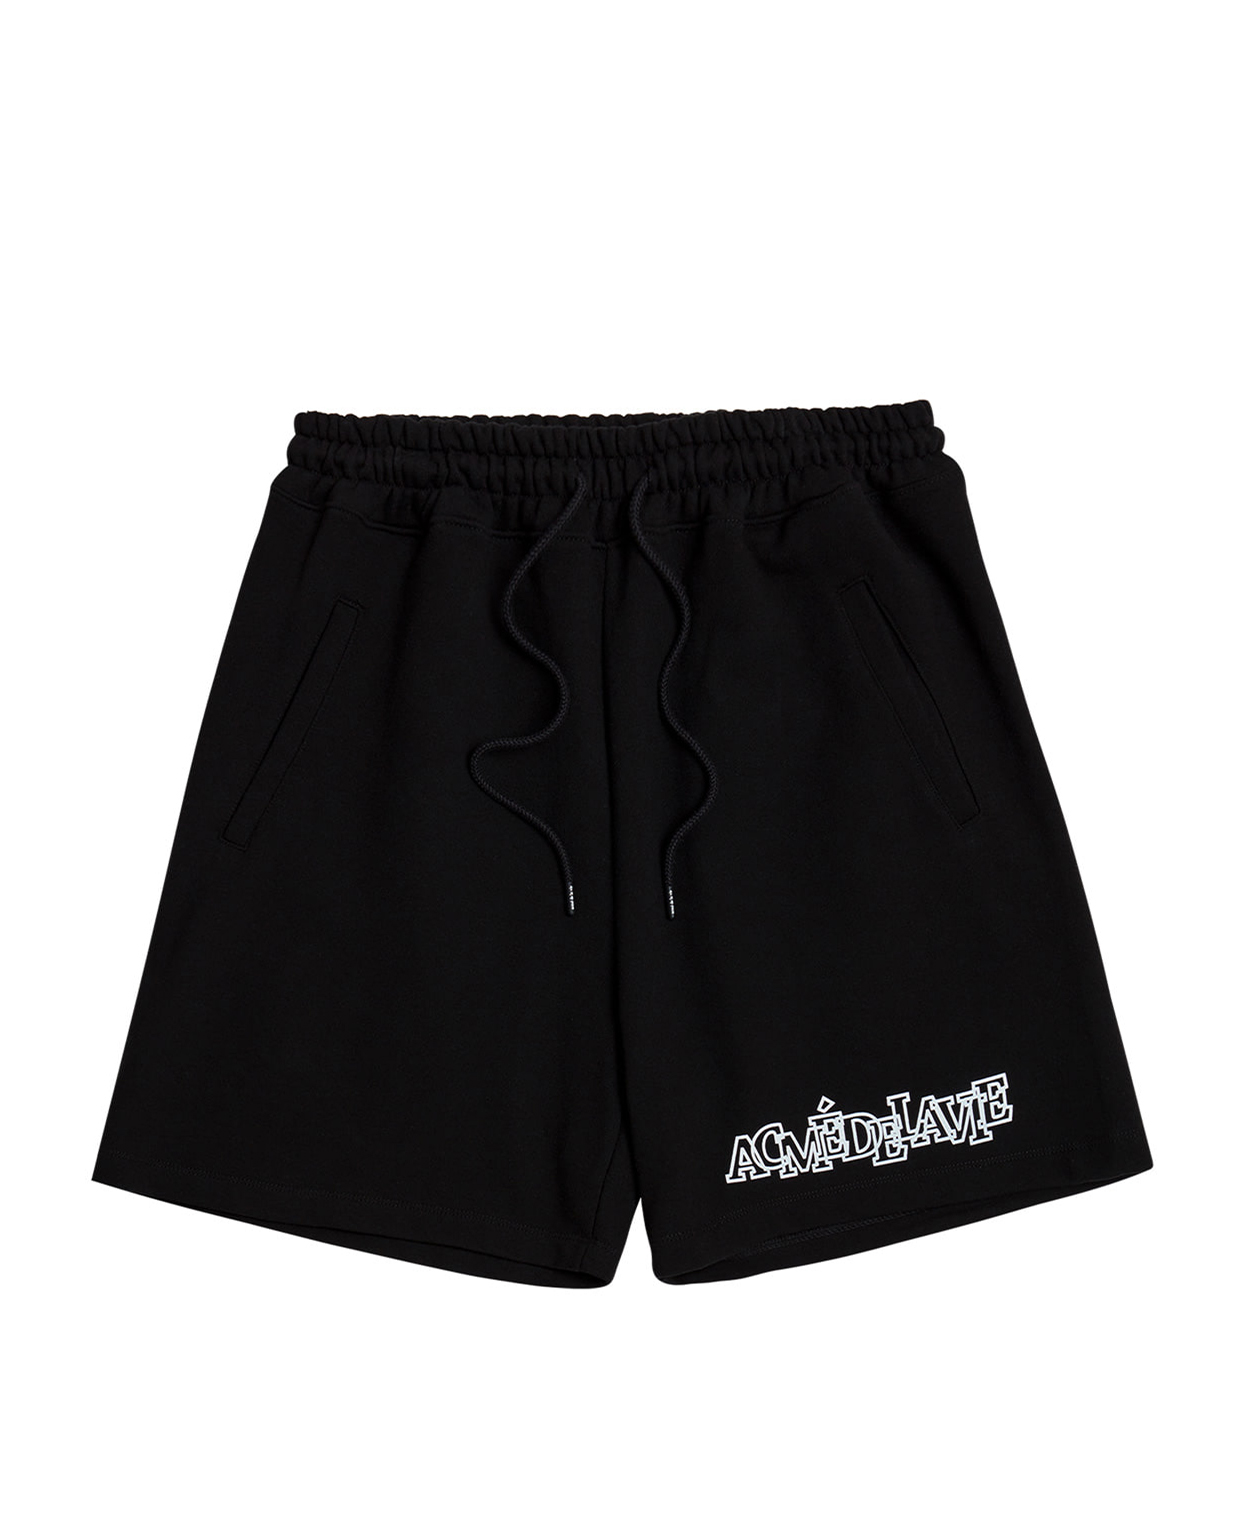 OUTLINE LOGO SHORT PANTS FOR WOMEN BLACK